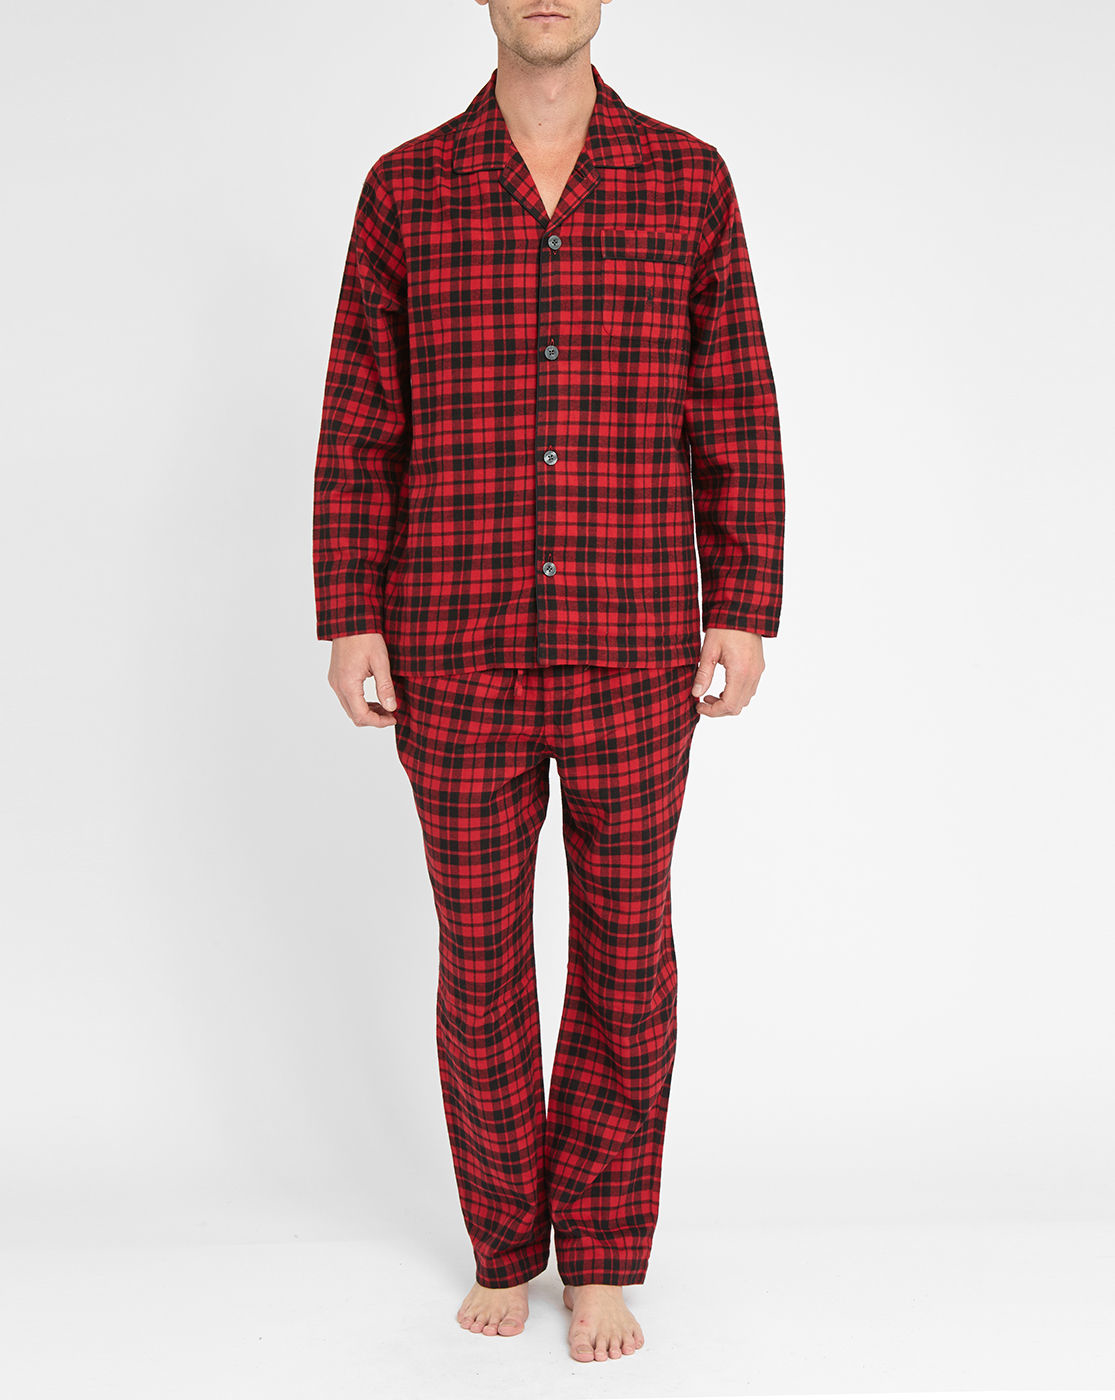 polo ralph lauren red black checked flannel pyjamas in red for men save 50 lyst. Black Bedroom Furniture Sets. Home Design Ideas